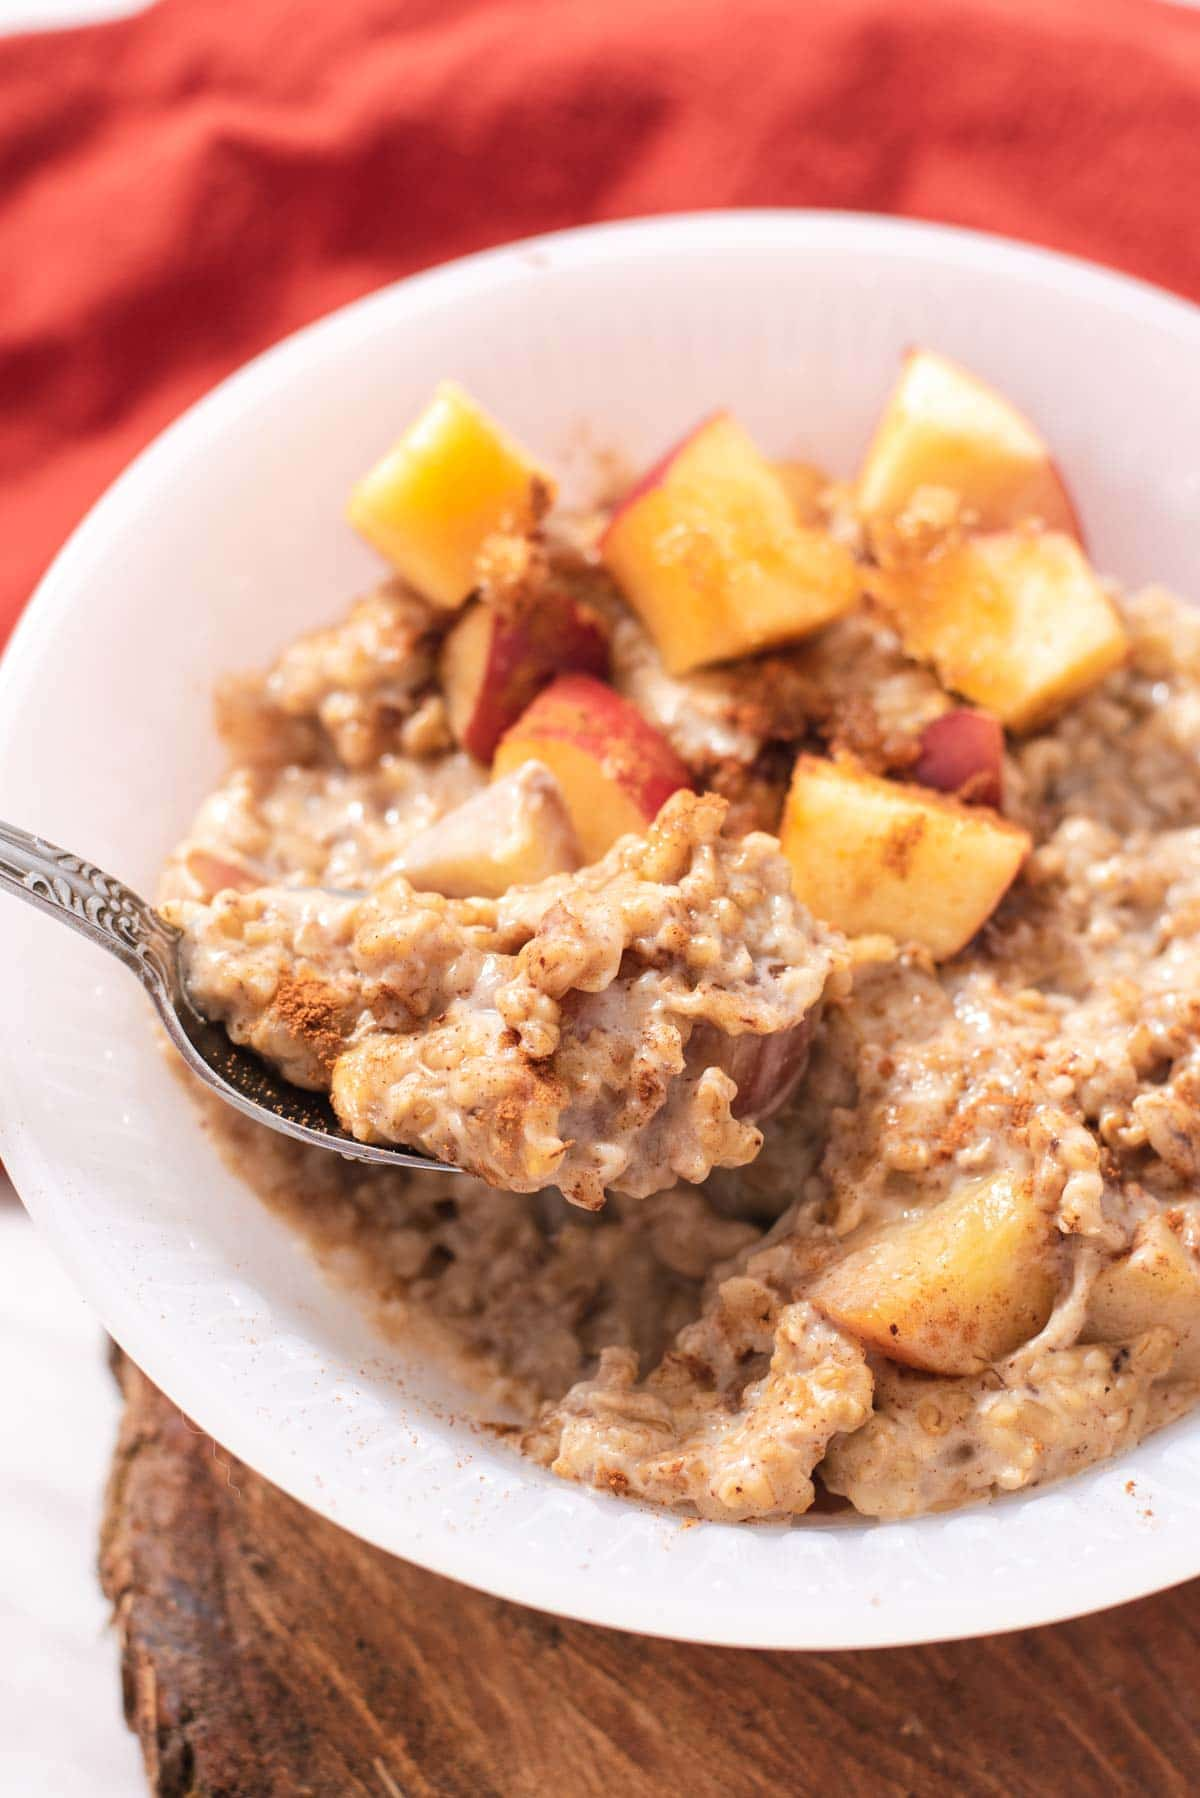 Silver spoon lifting a bite of steel cut oats out of a white bowl